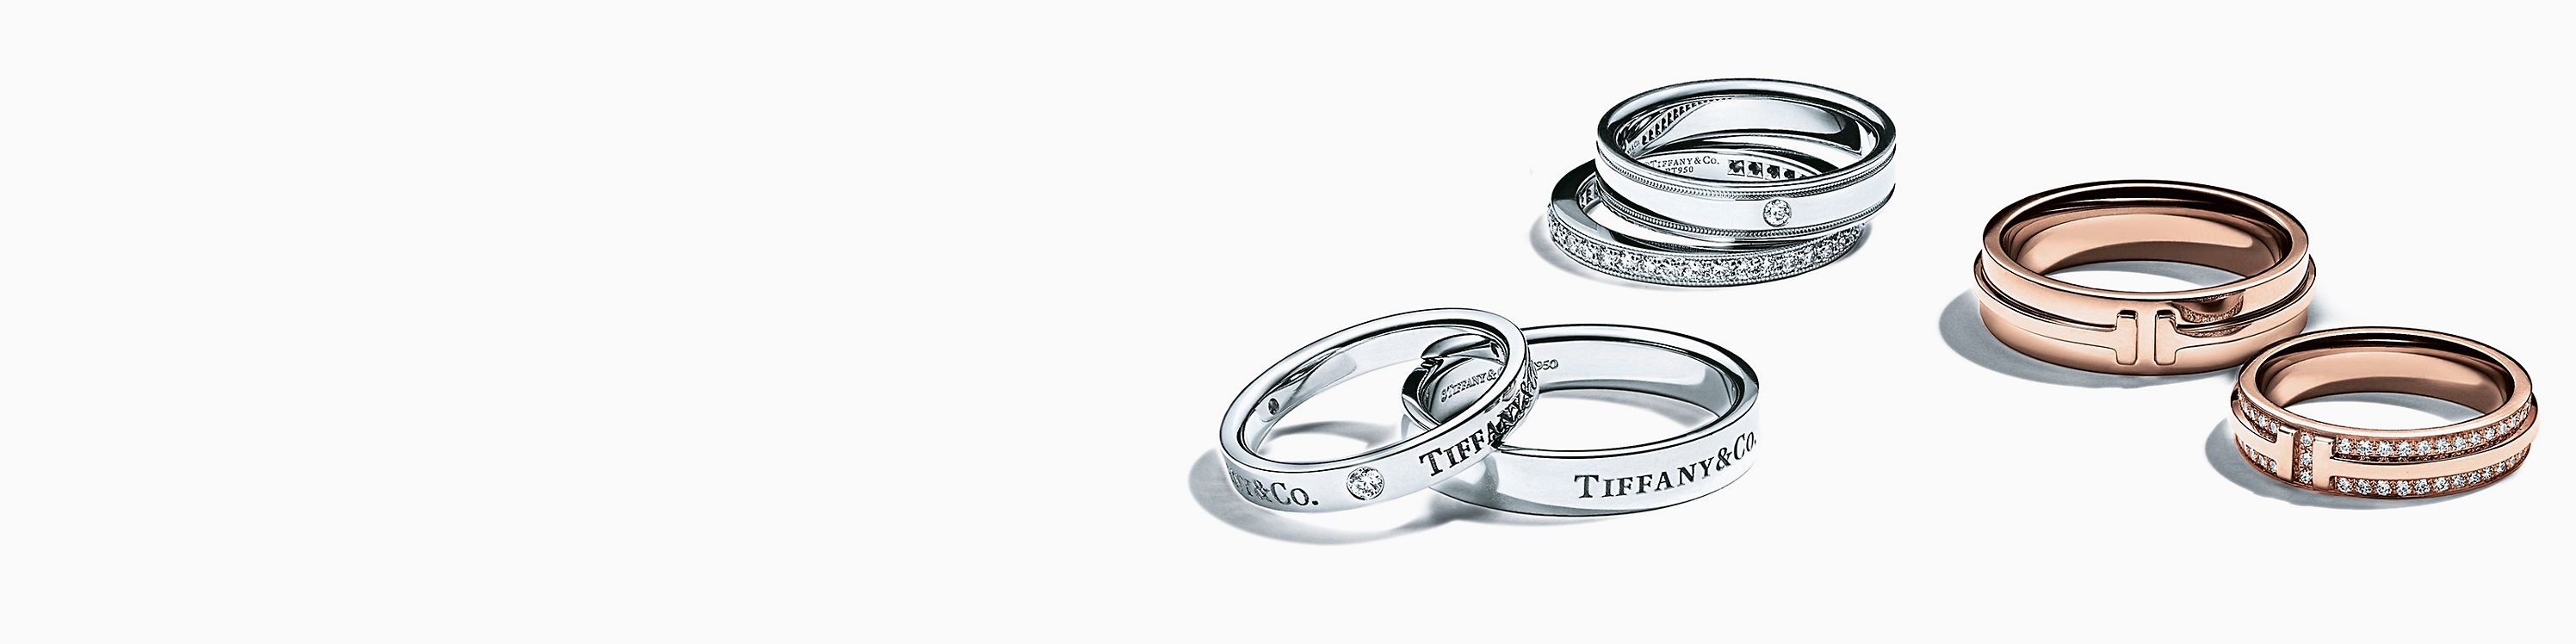 Parcourir les ensembles d'alliances Tiffany & Co.